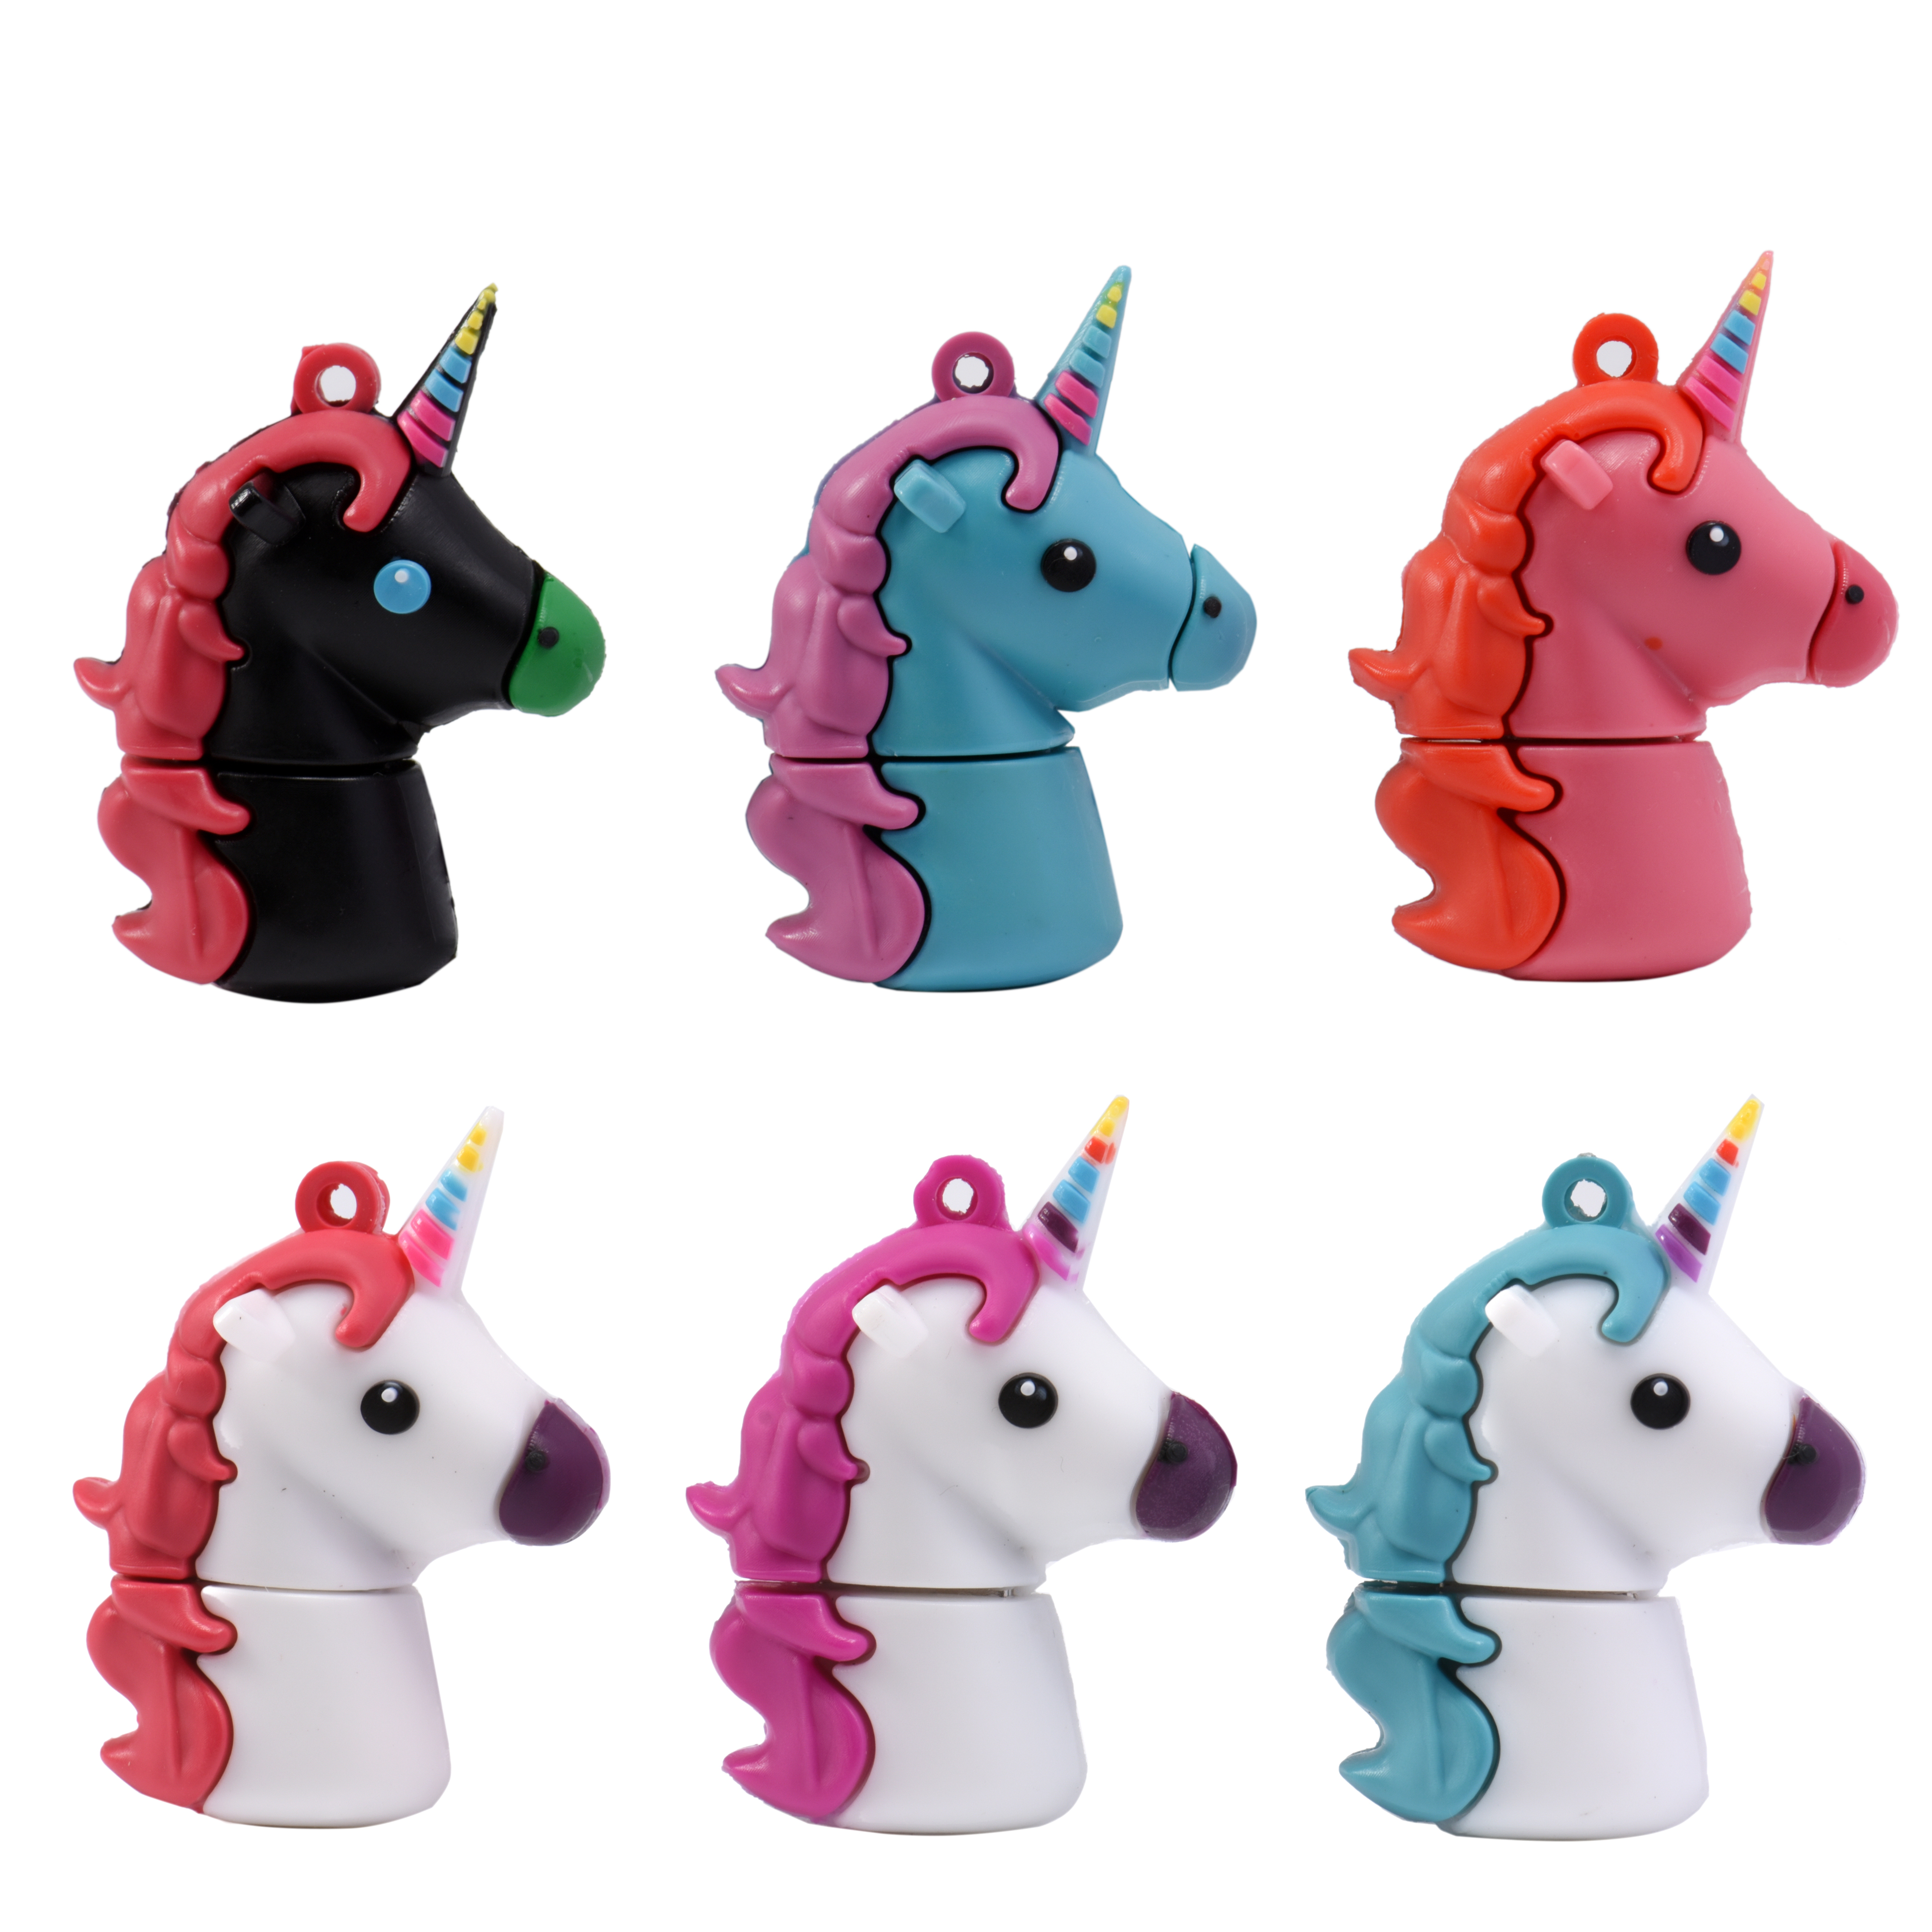 Hot Sale New Unicorn Despicable Me 2 USB Flash Drive 100% Genuine Cartoon Memory Stick Pendrive 4GB 8GB 16GB 32GB Pen Drive Toy